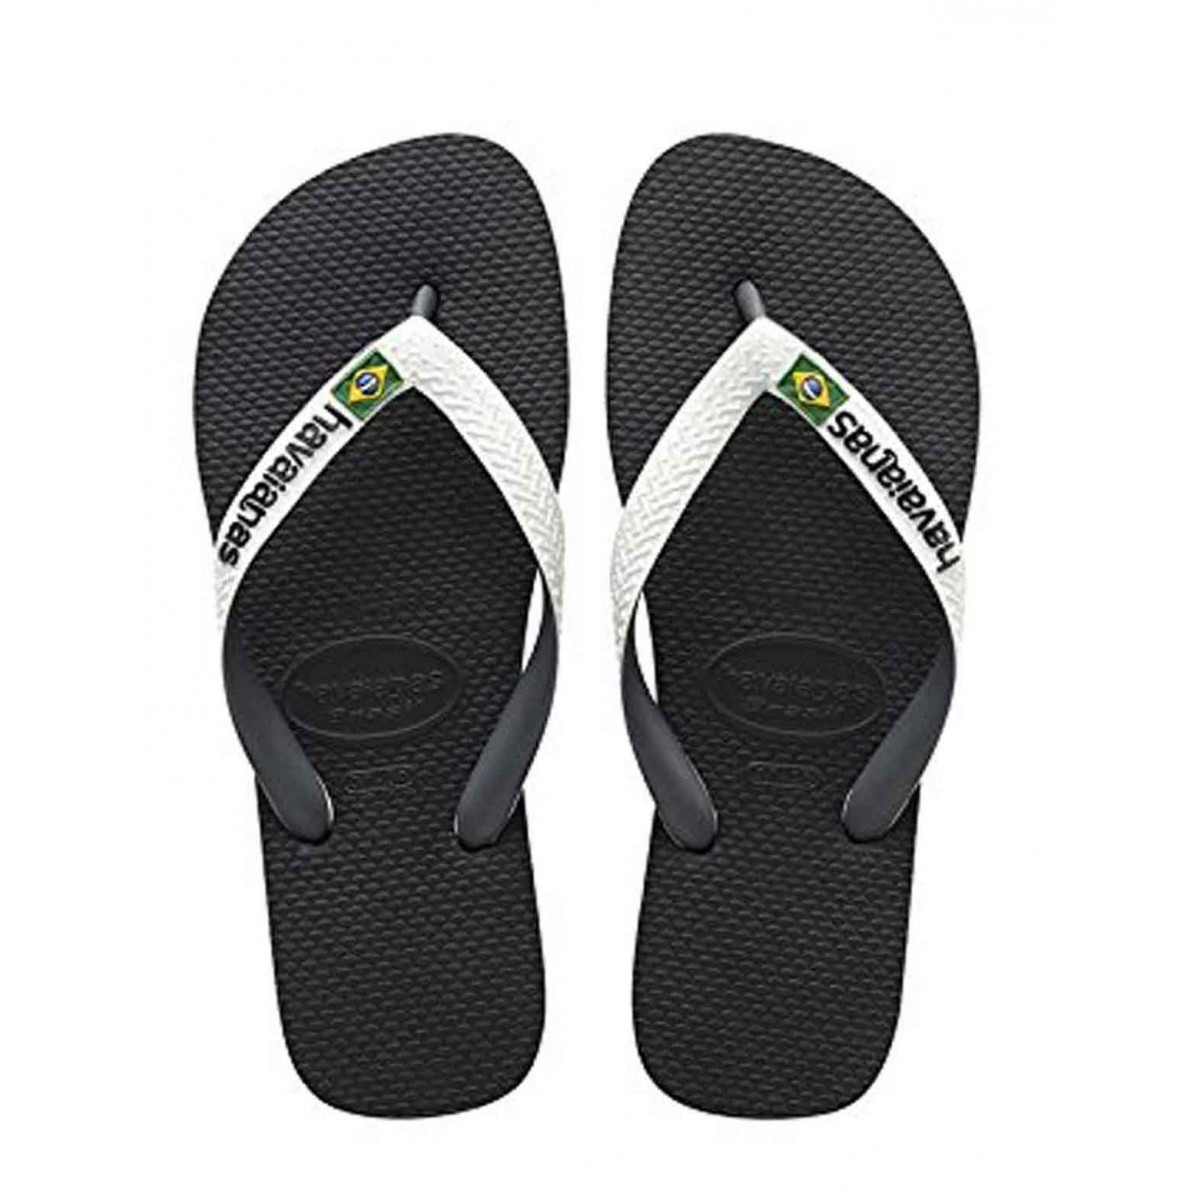 buy popular fd366 78a97 Havaianas uomo brasil mix infradito nero - Best of bikinis